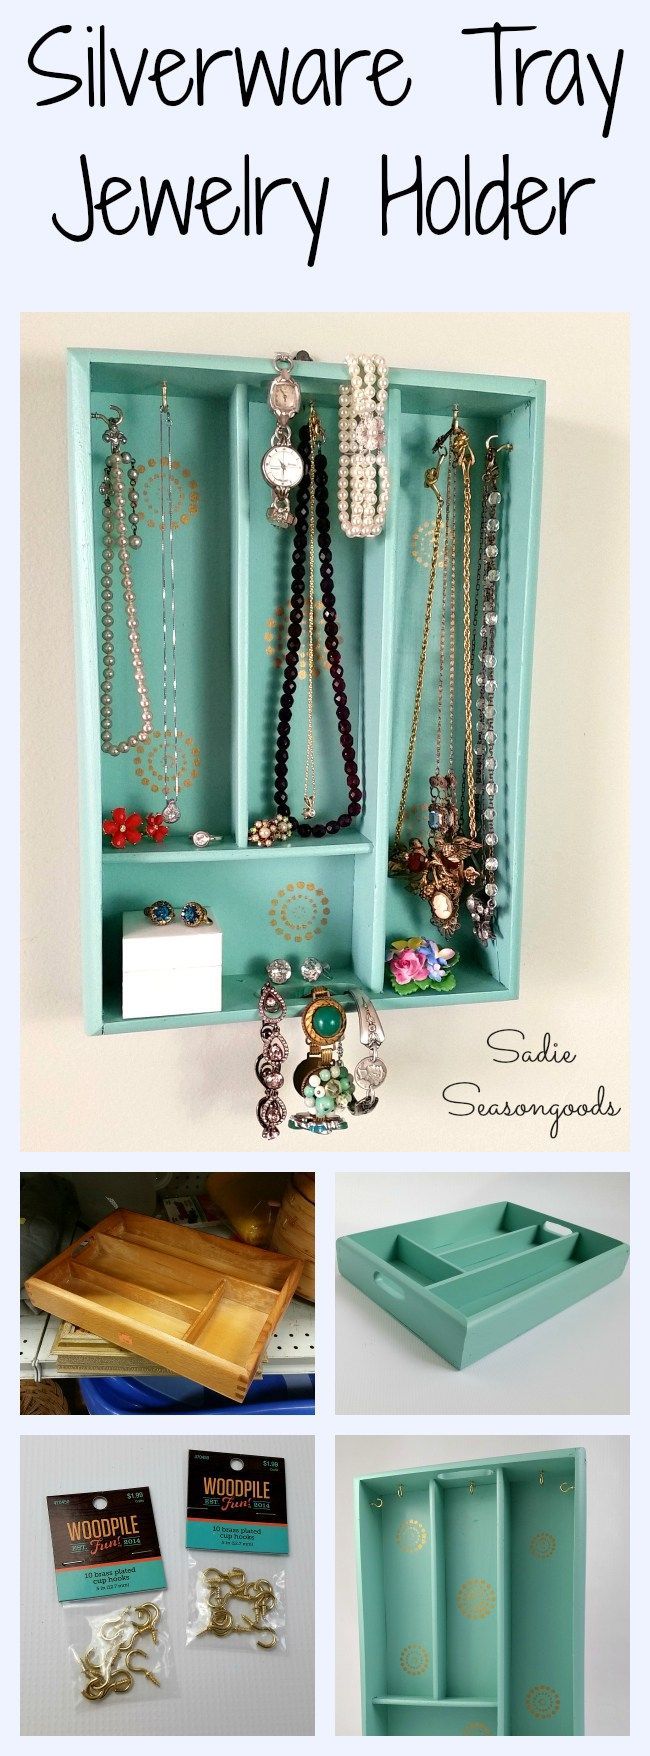 DIY Jewelry Organizer Holder with a